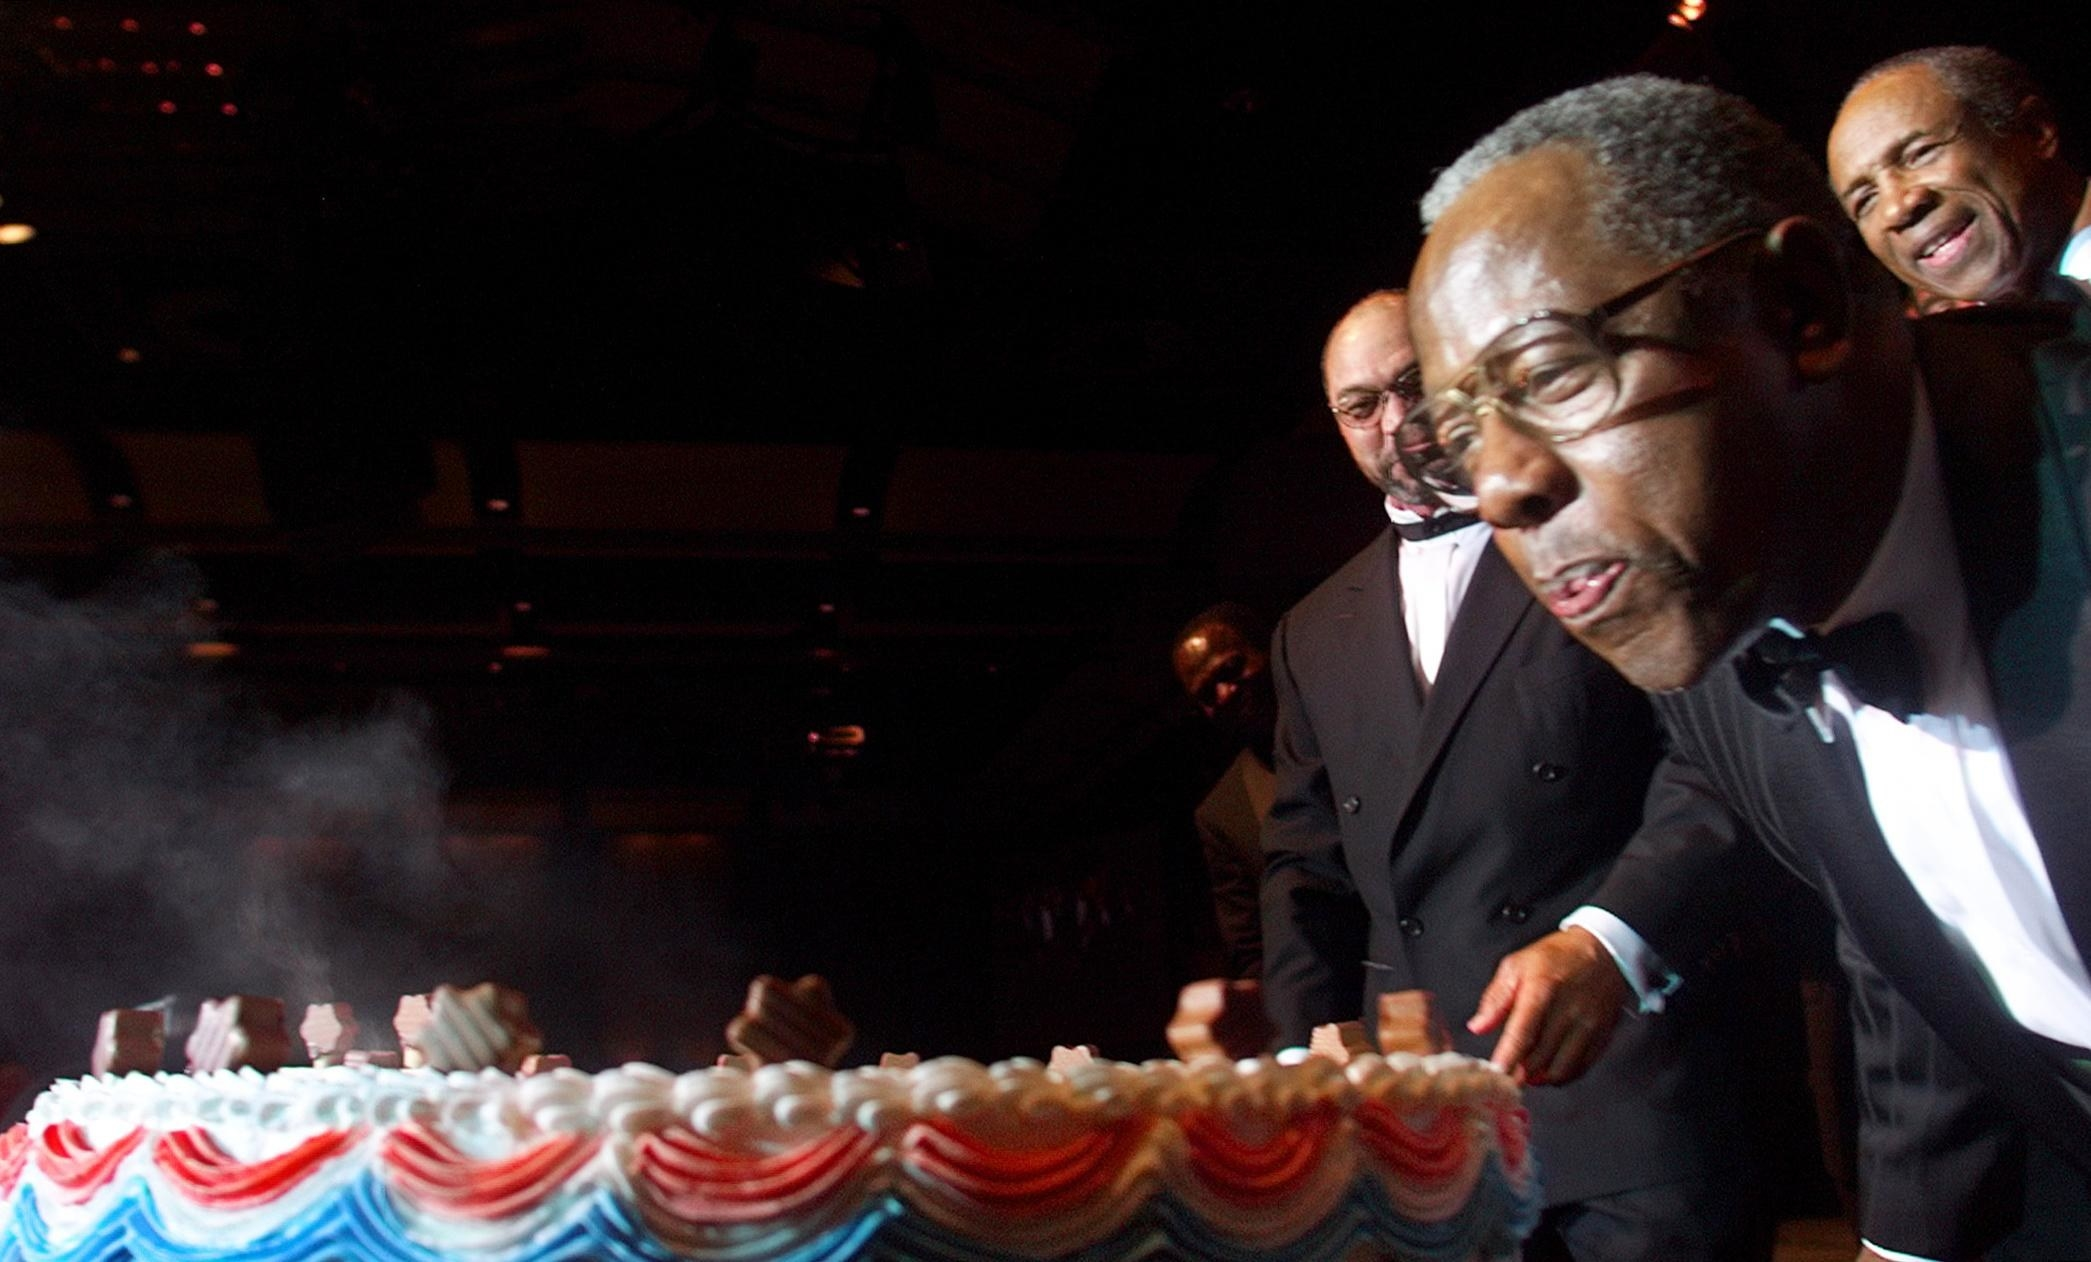 Hank Aaron blows out candles on his birthday in a tuxedo